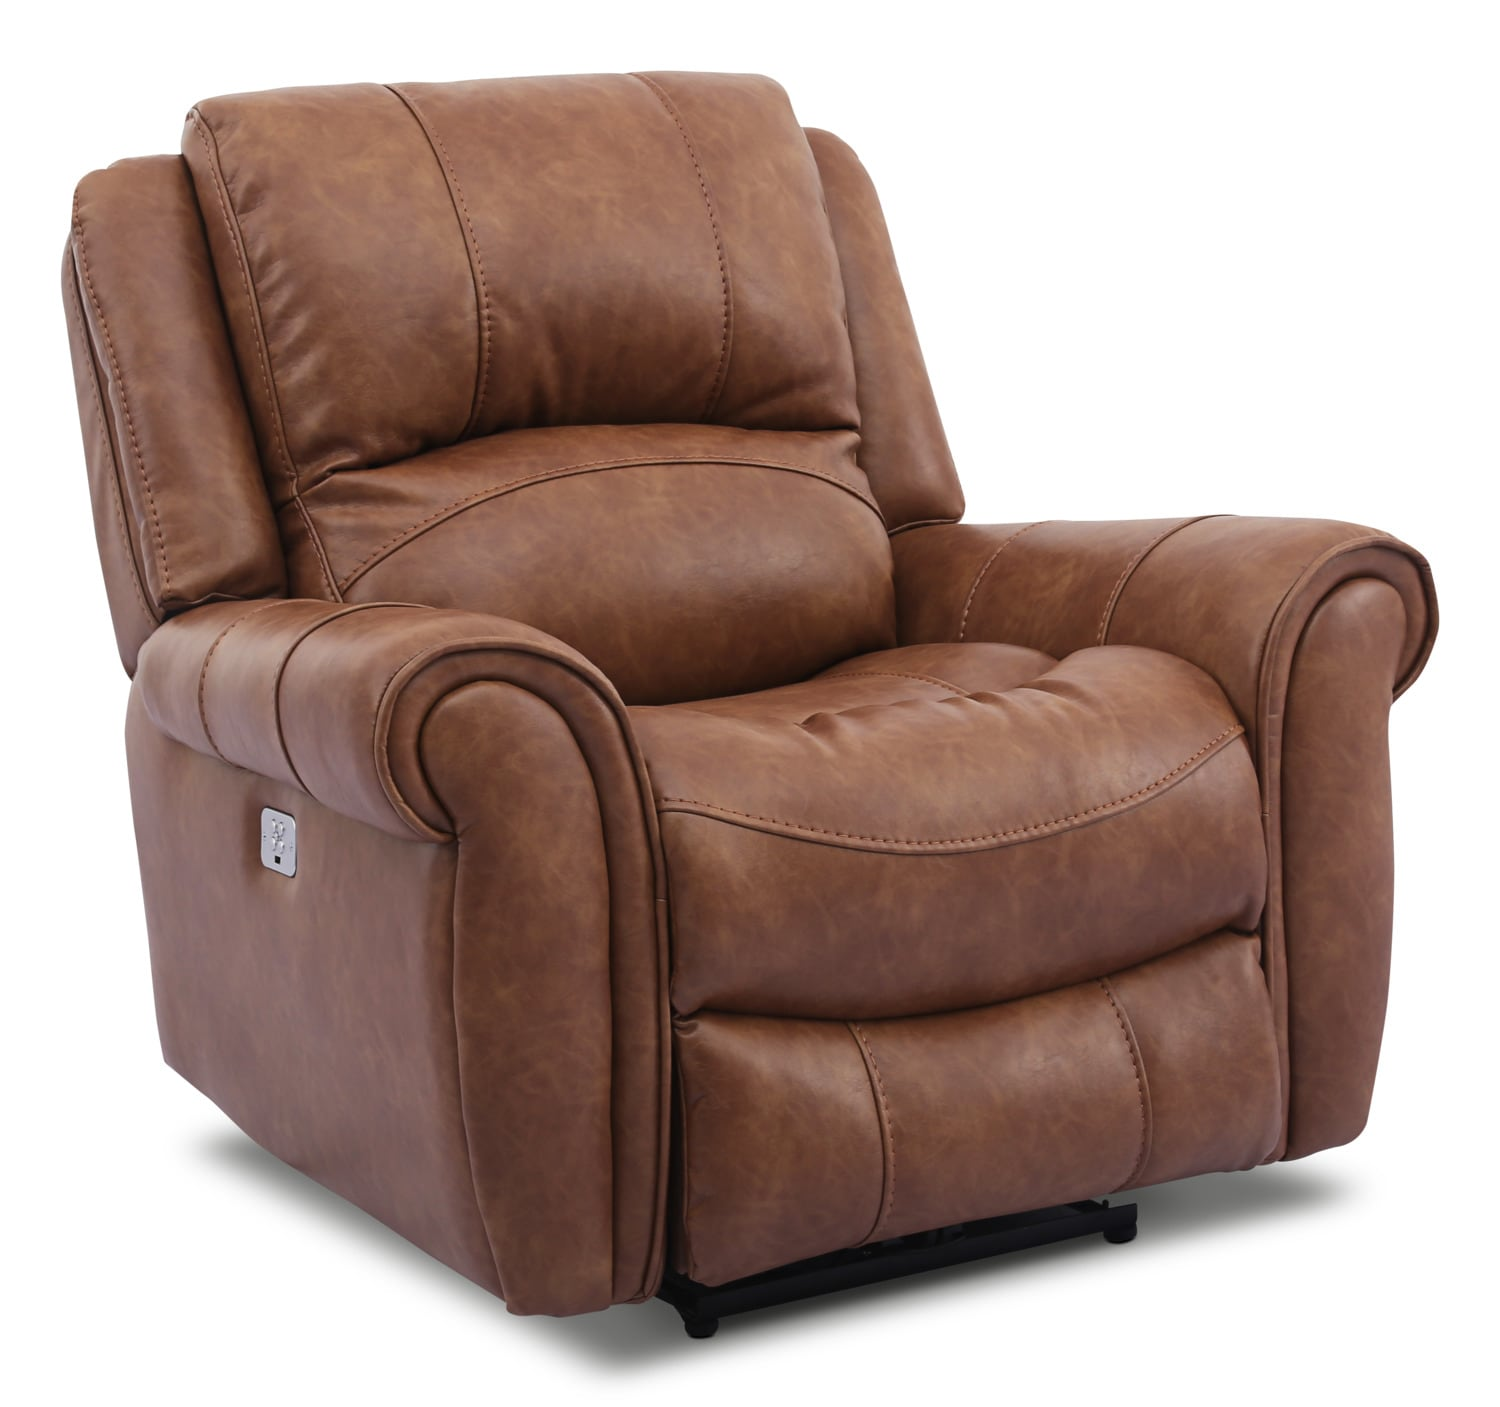 Kane Leather Look Fabric Power Reclining Chair Saddle The Brick